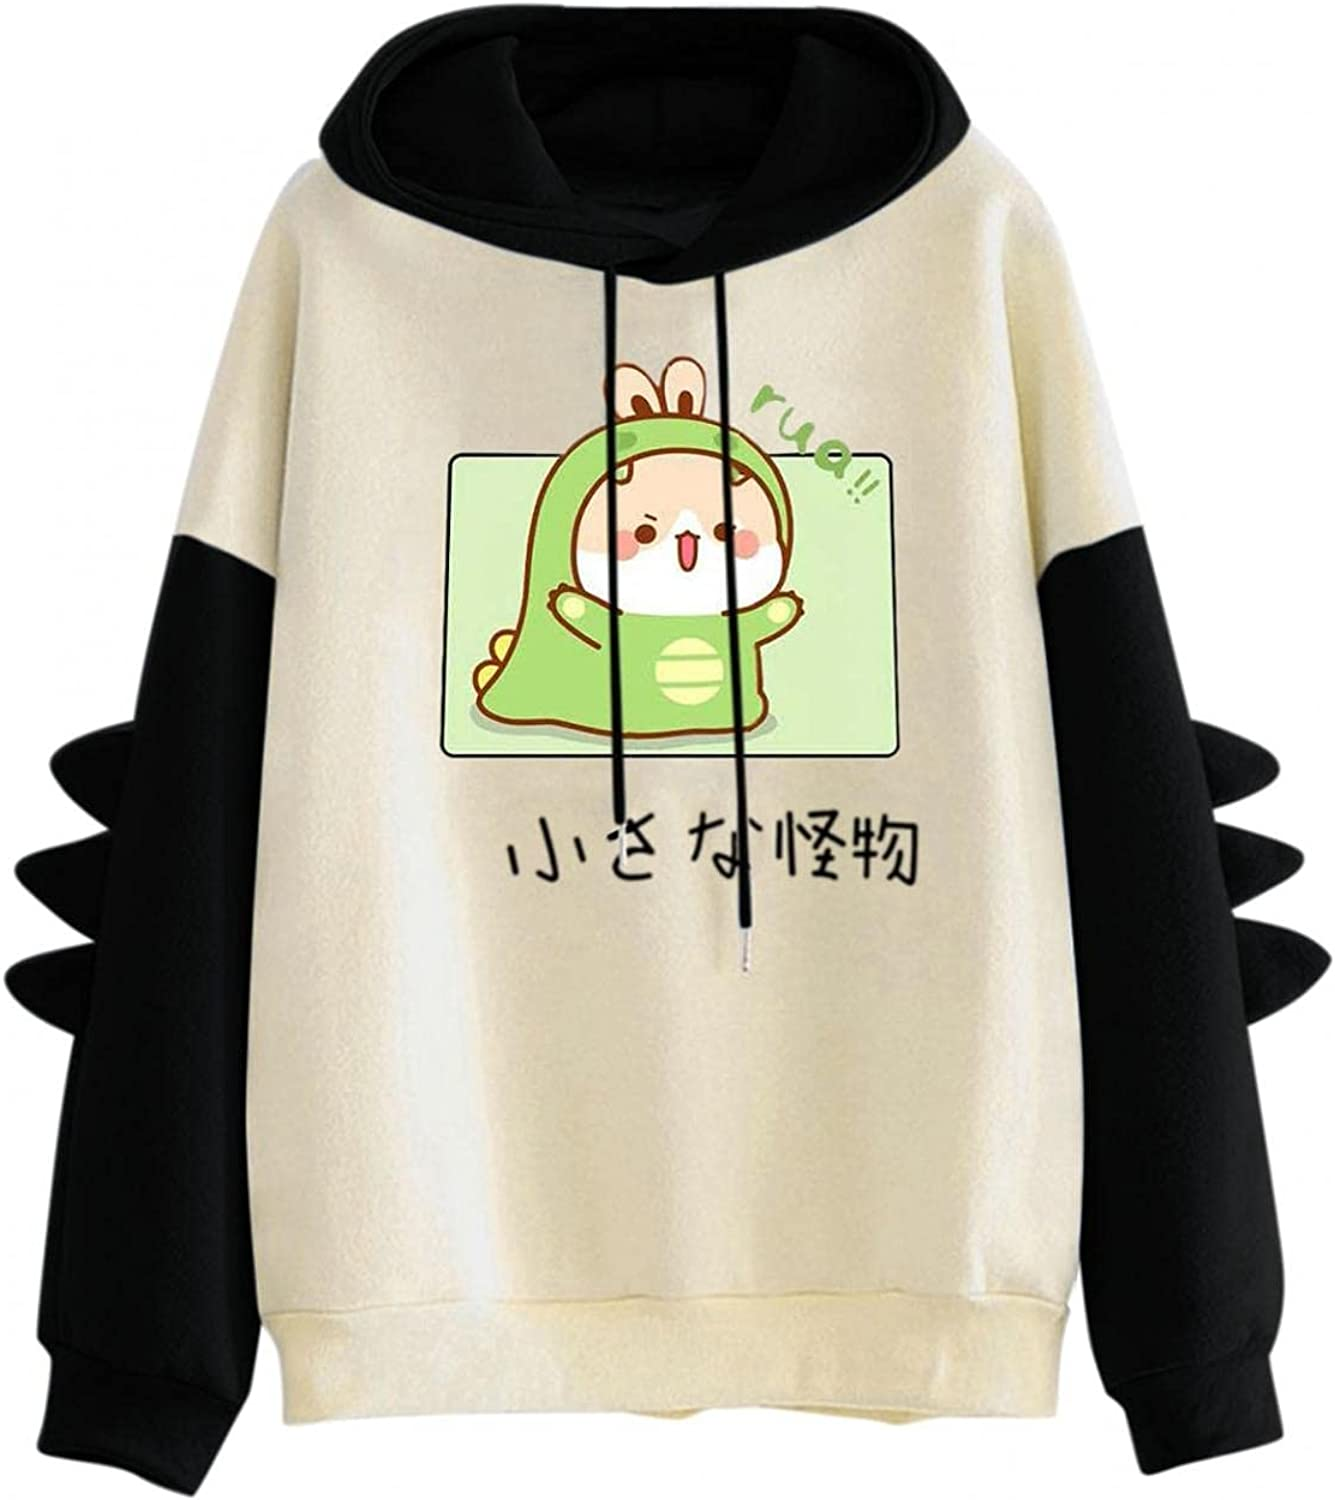 Haheyrte Hoodies for Womens Womens Dinosaur Print Hooded Sweatshirts Casual Loose Long Sleeve Pullover Tops Sweaters Shirts